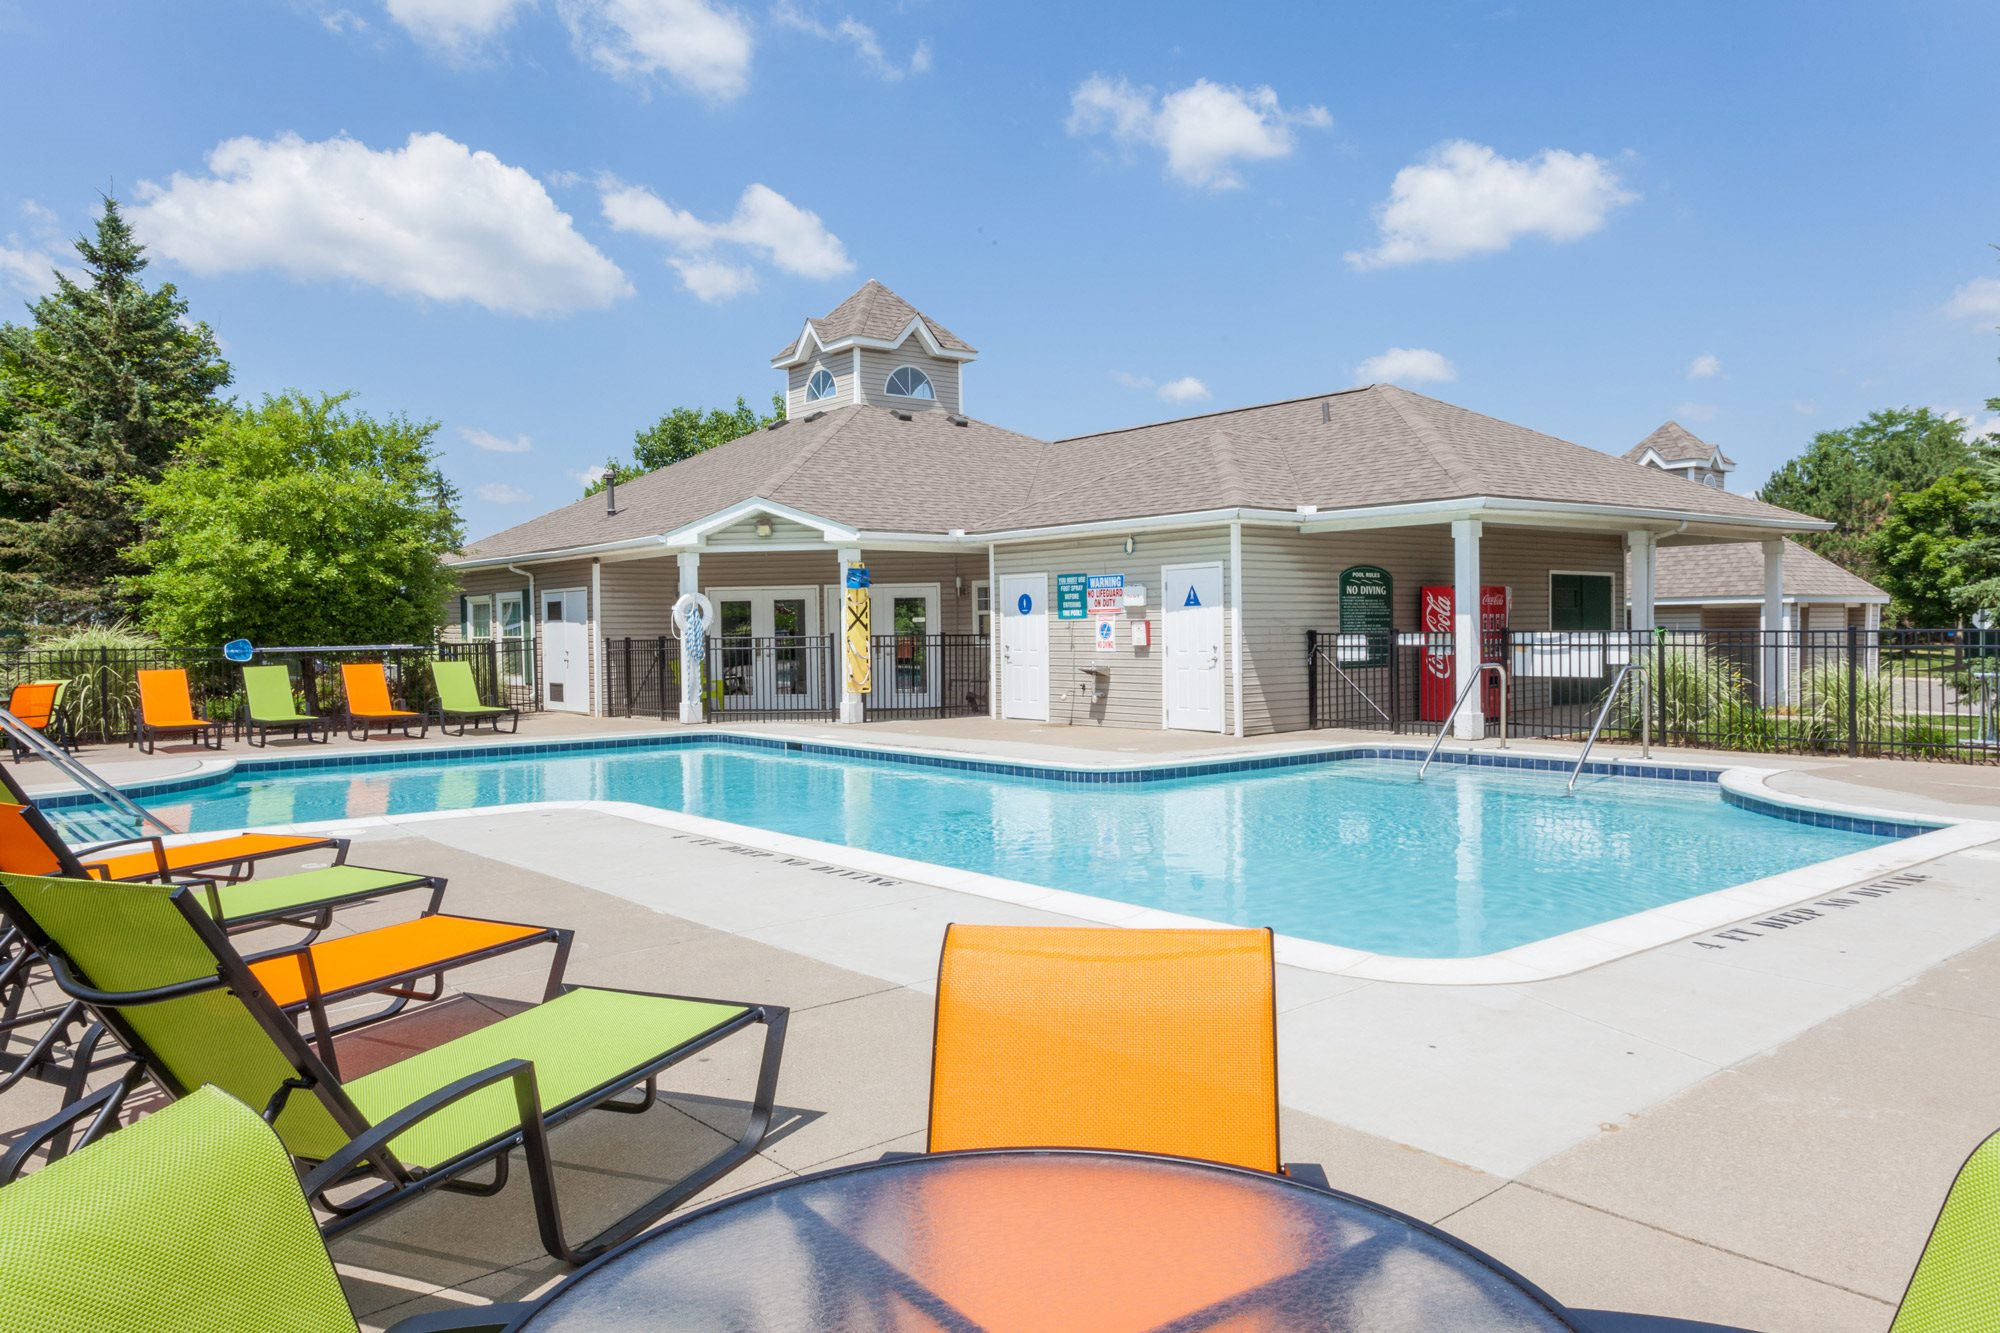 Swimming Pool with Lounge Chairs at The Orion - Orion, MI, Orion, 48359